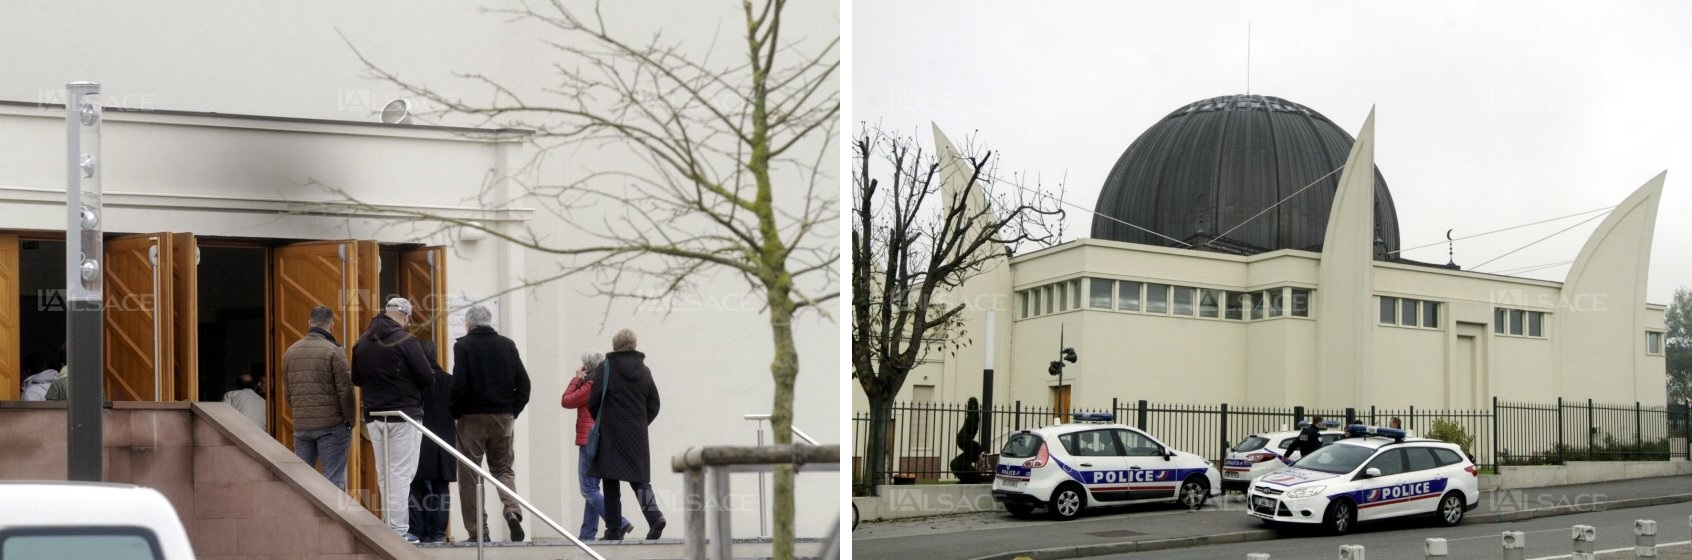 Strasbourg Grand Mosque arson attack